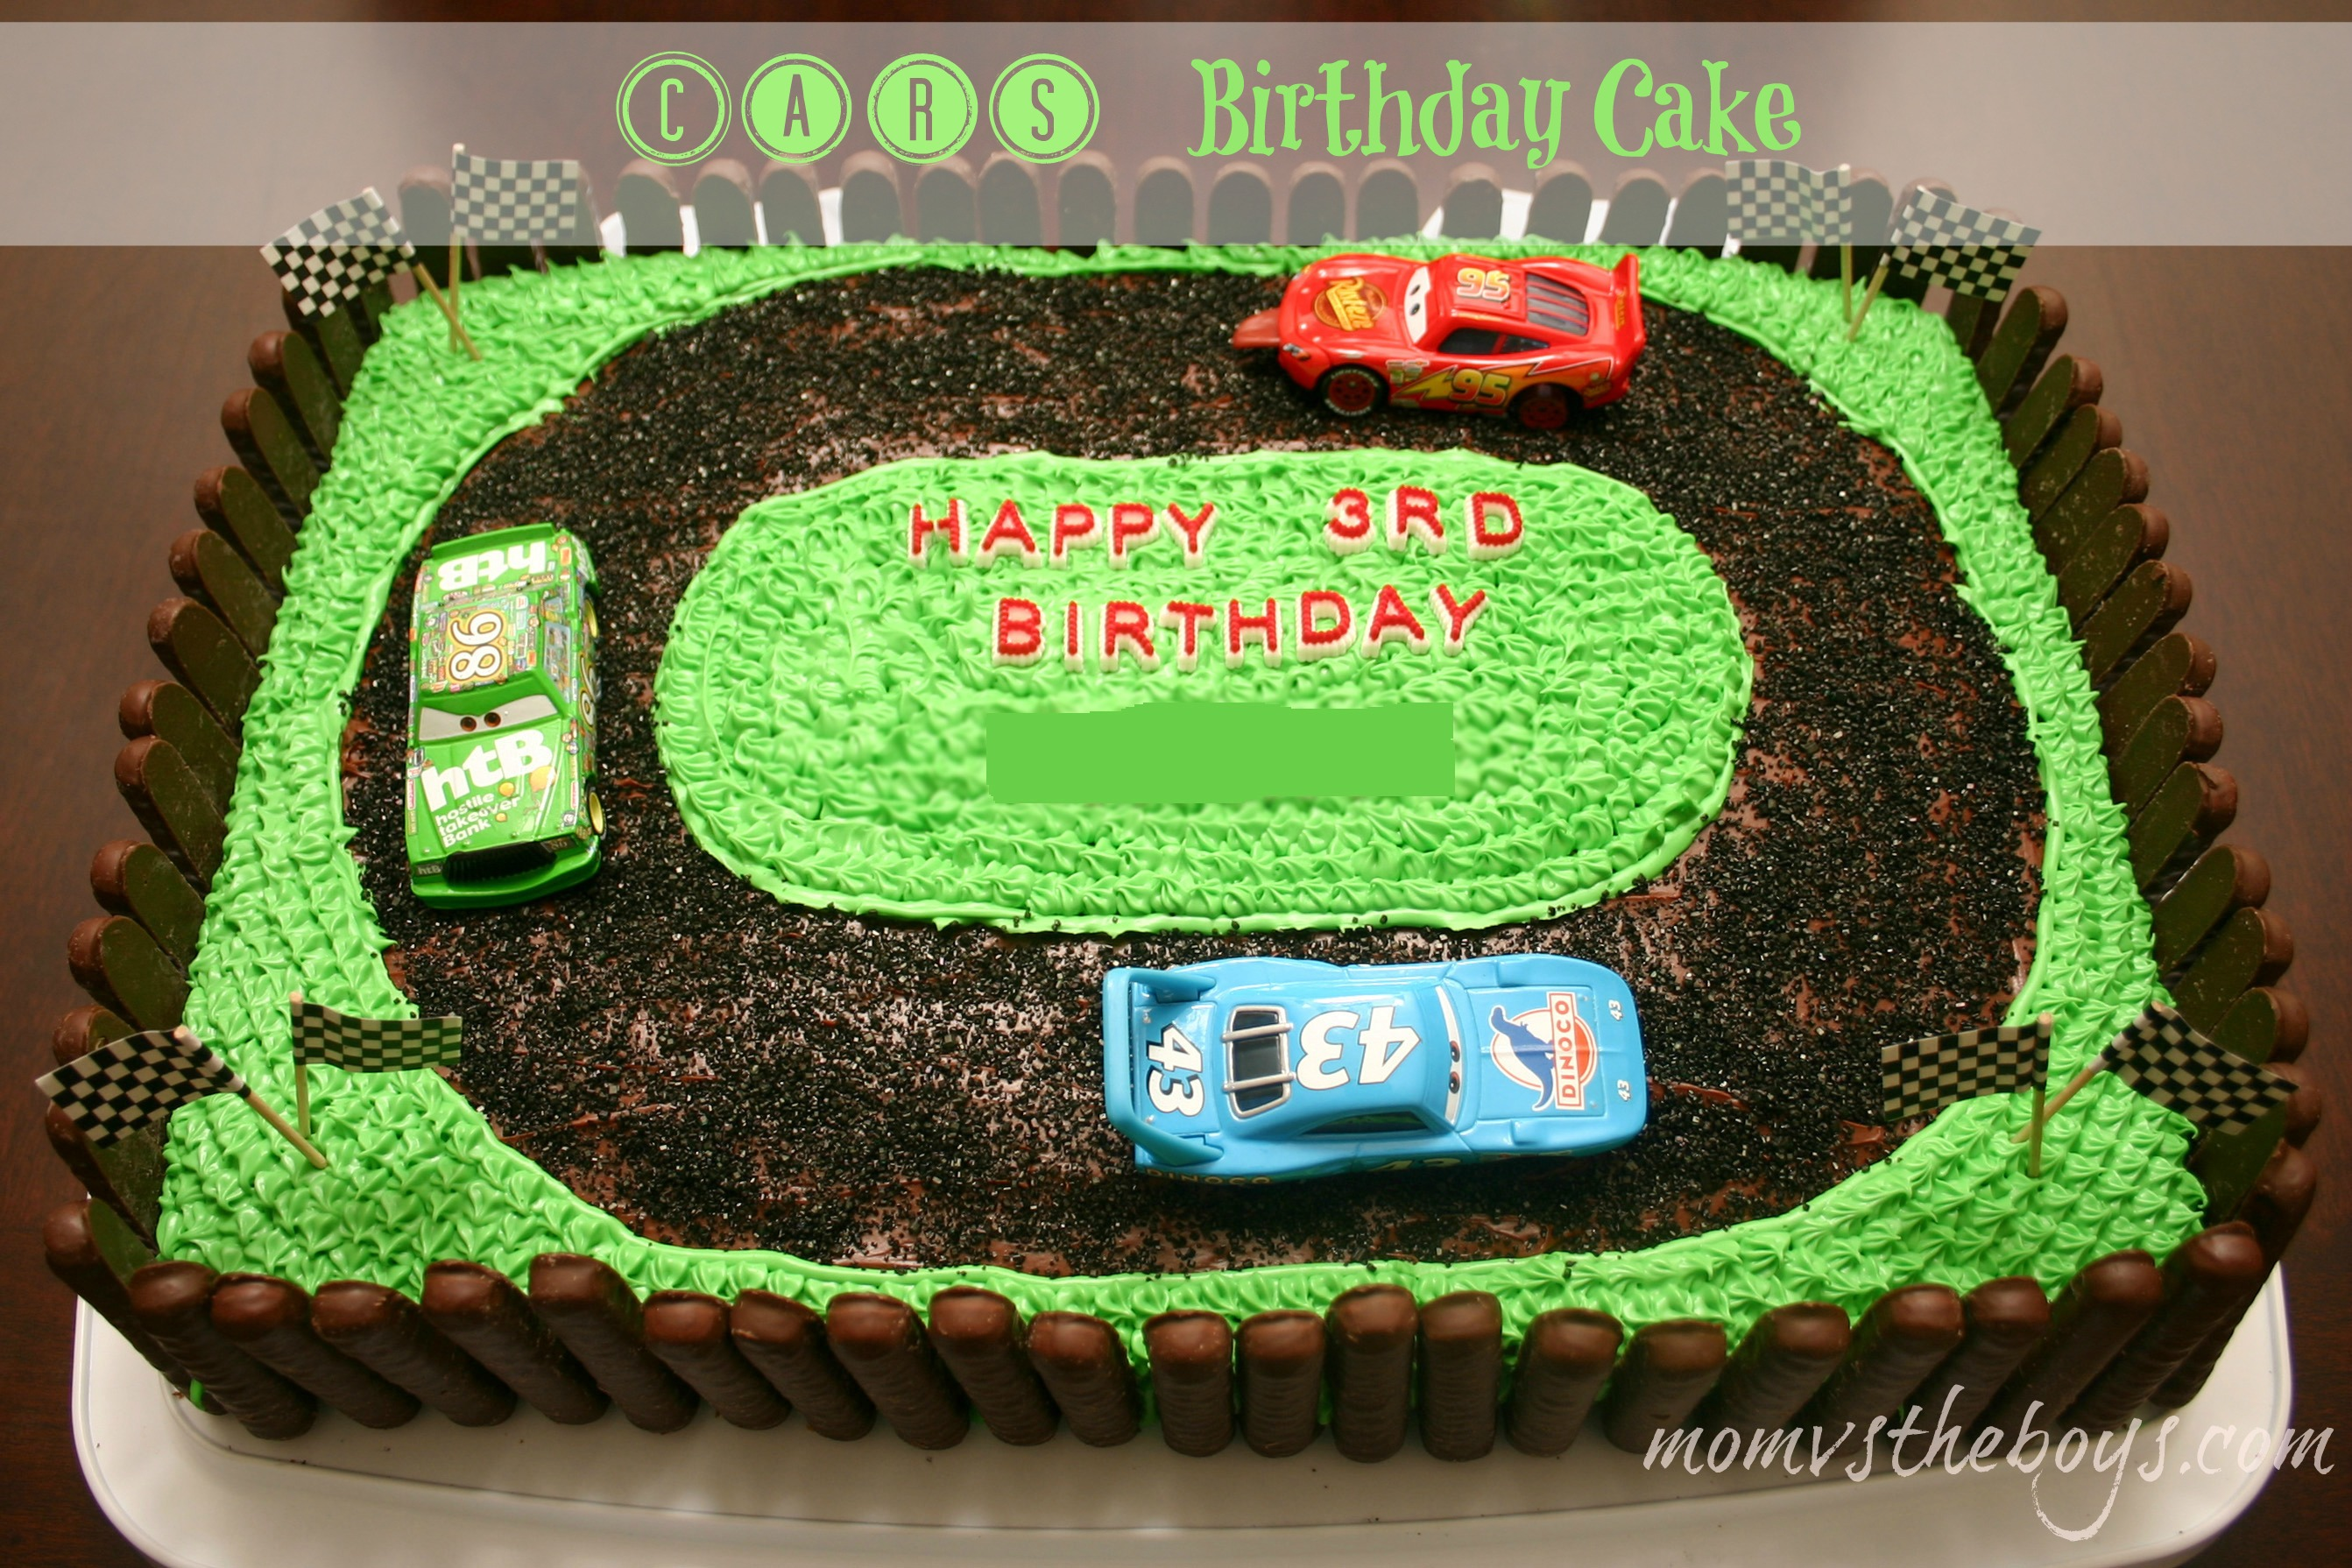 Birthday Cake Images Of Cars : cars birthday cake - Mom vs the Boys